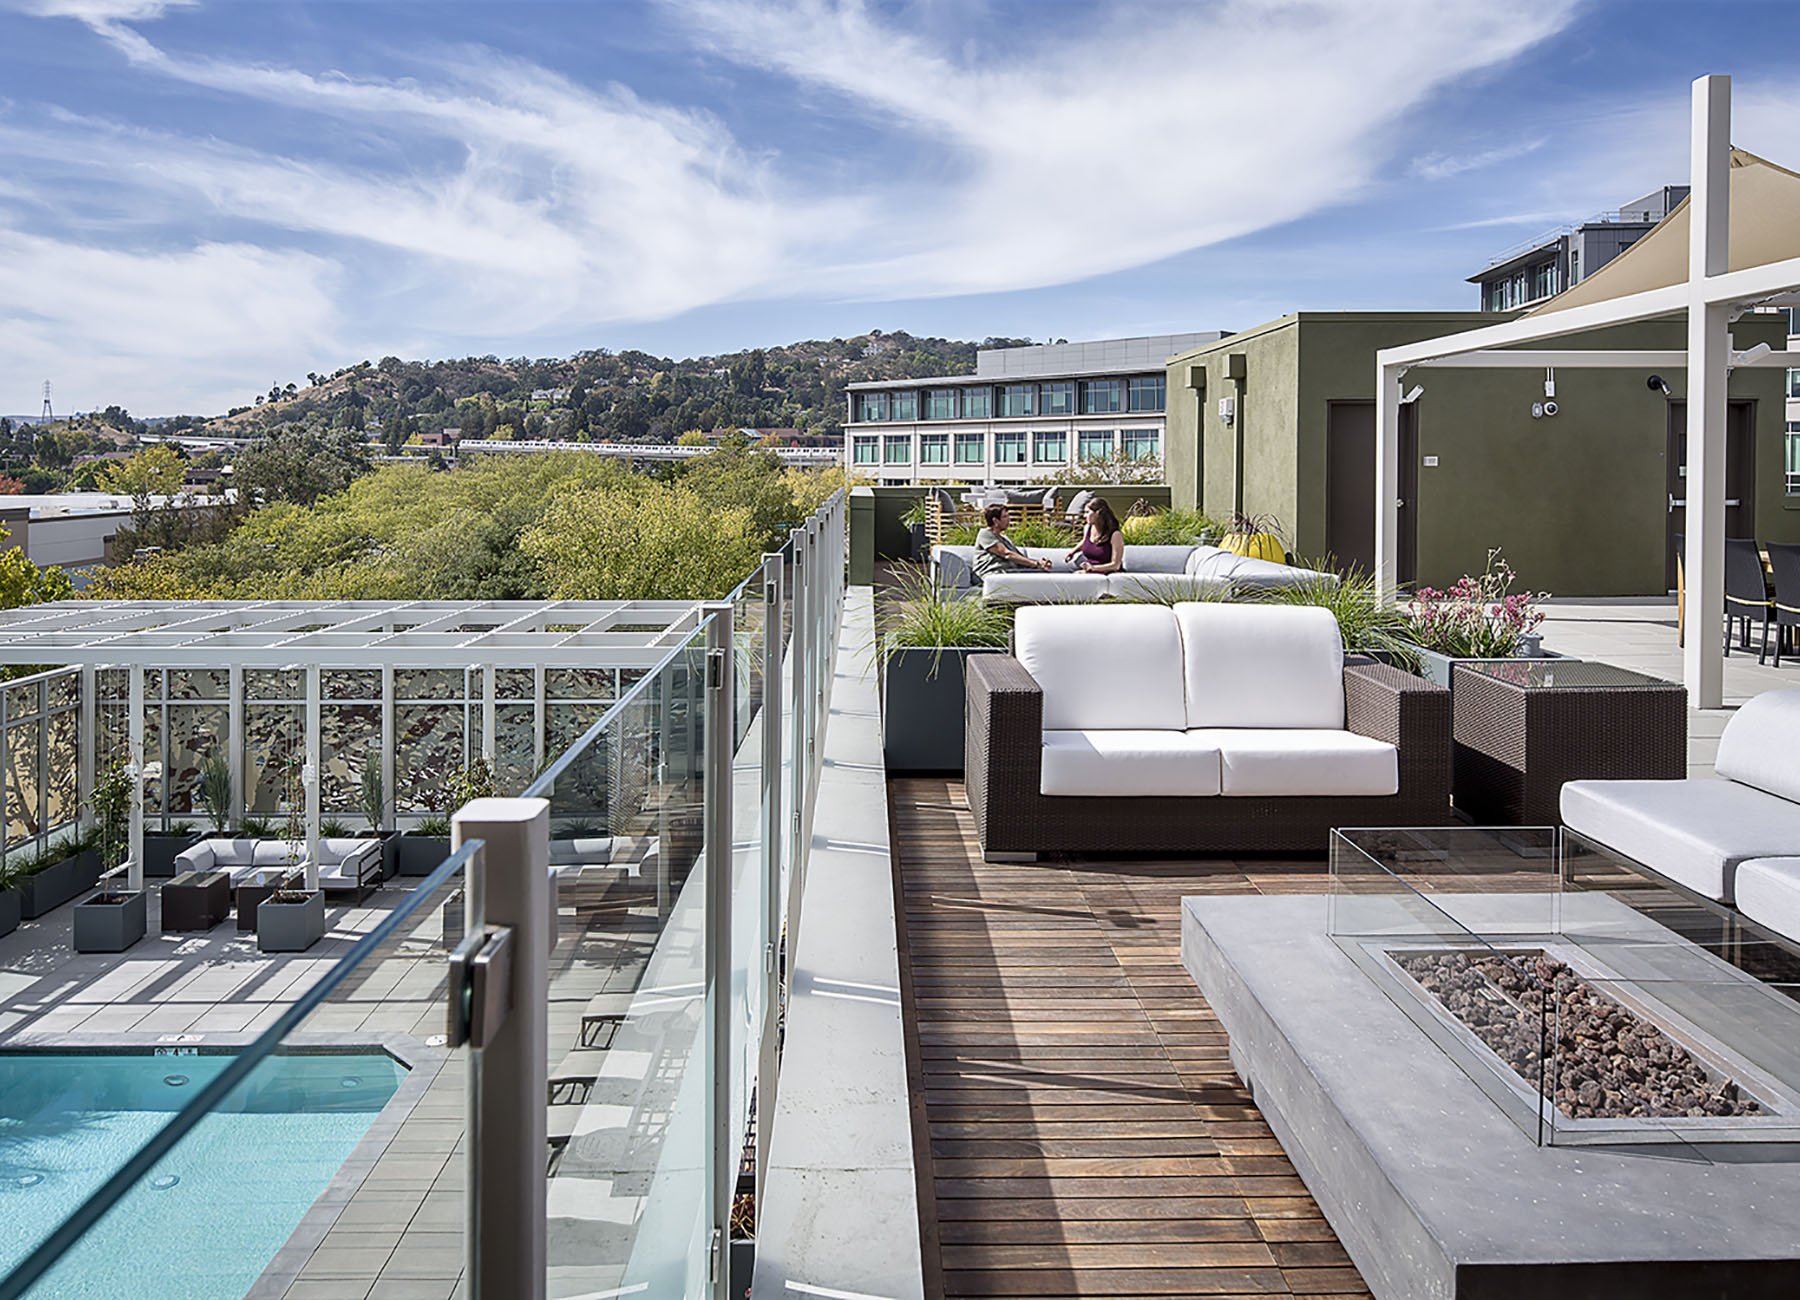 Rooftop terrace with firepit and seating overlooking an inground pool, with trees and commercial buildings behind